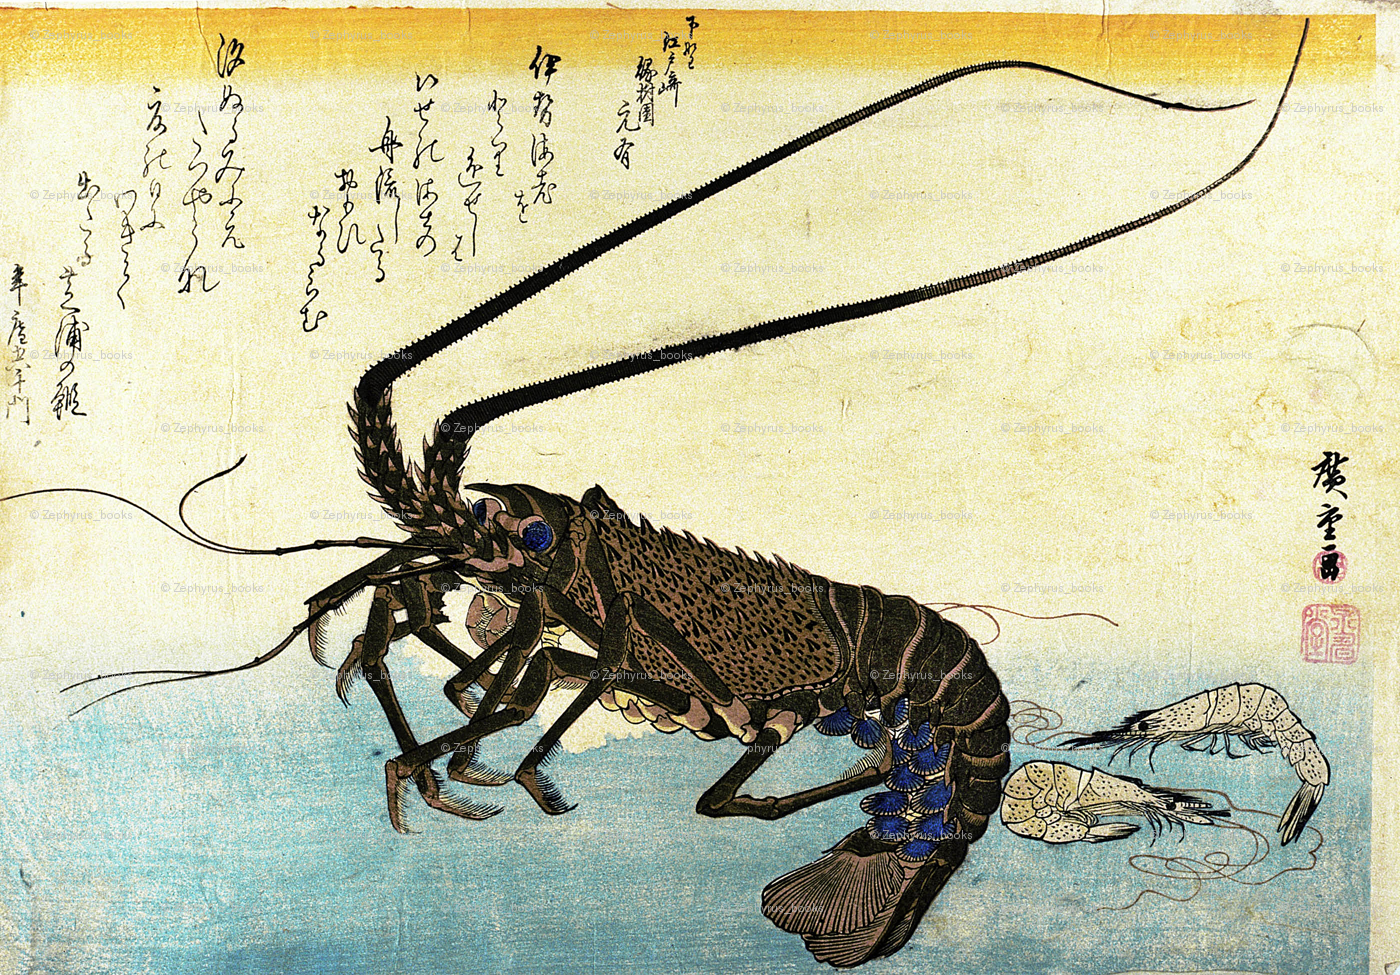 Iseebi   Ebi (Crawfish or Spiny Lobster and Shrimp) - Hiroshige s Colorful  Japanese Fish Print giftwrap - zephyrus books - Spoonflower 85b76d9b2